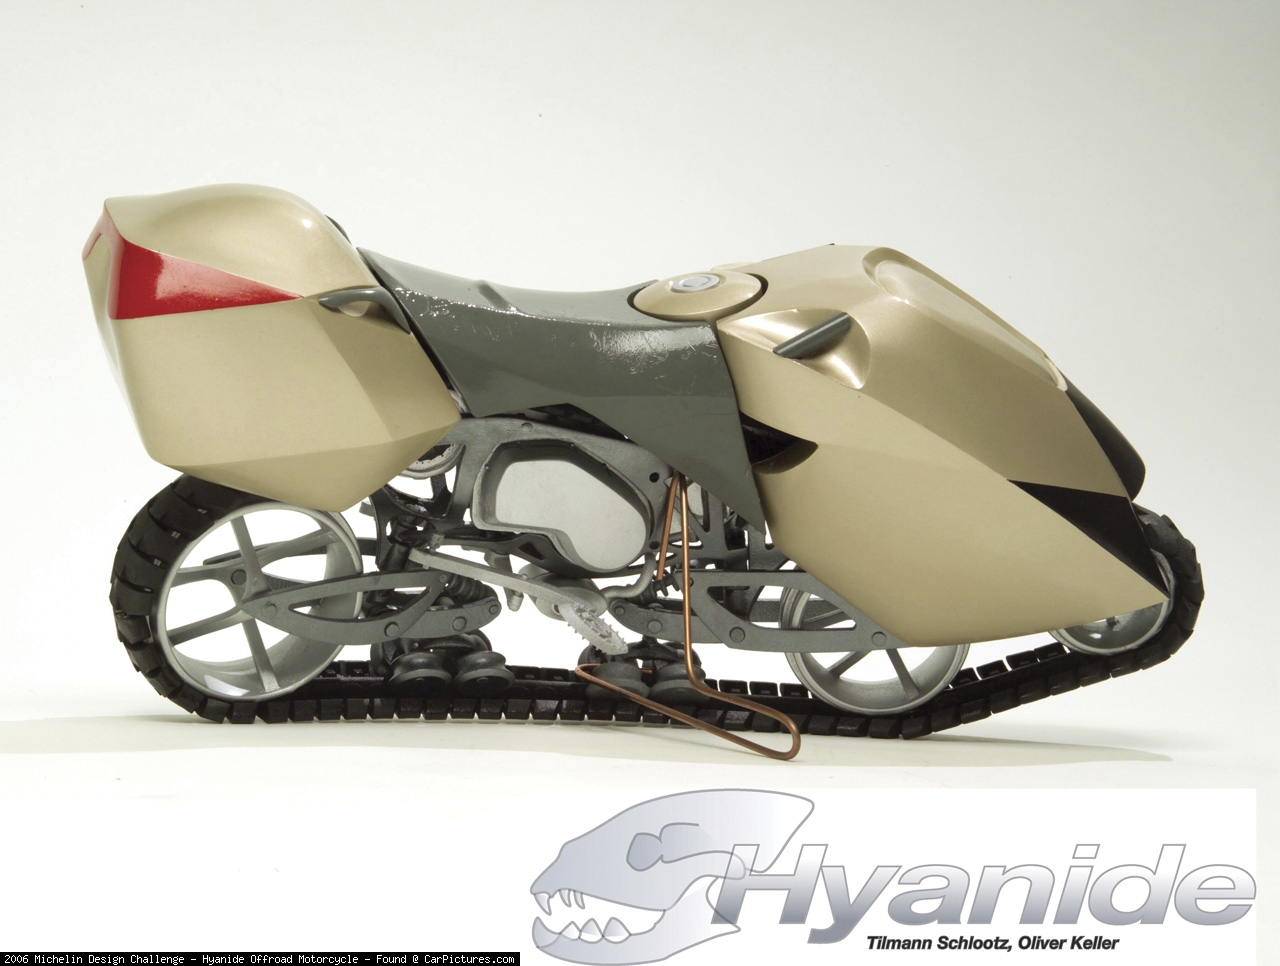 Michelin Design Hyanide Offroad Motorcycle photo 44651